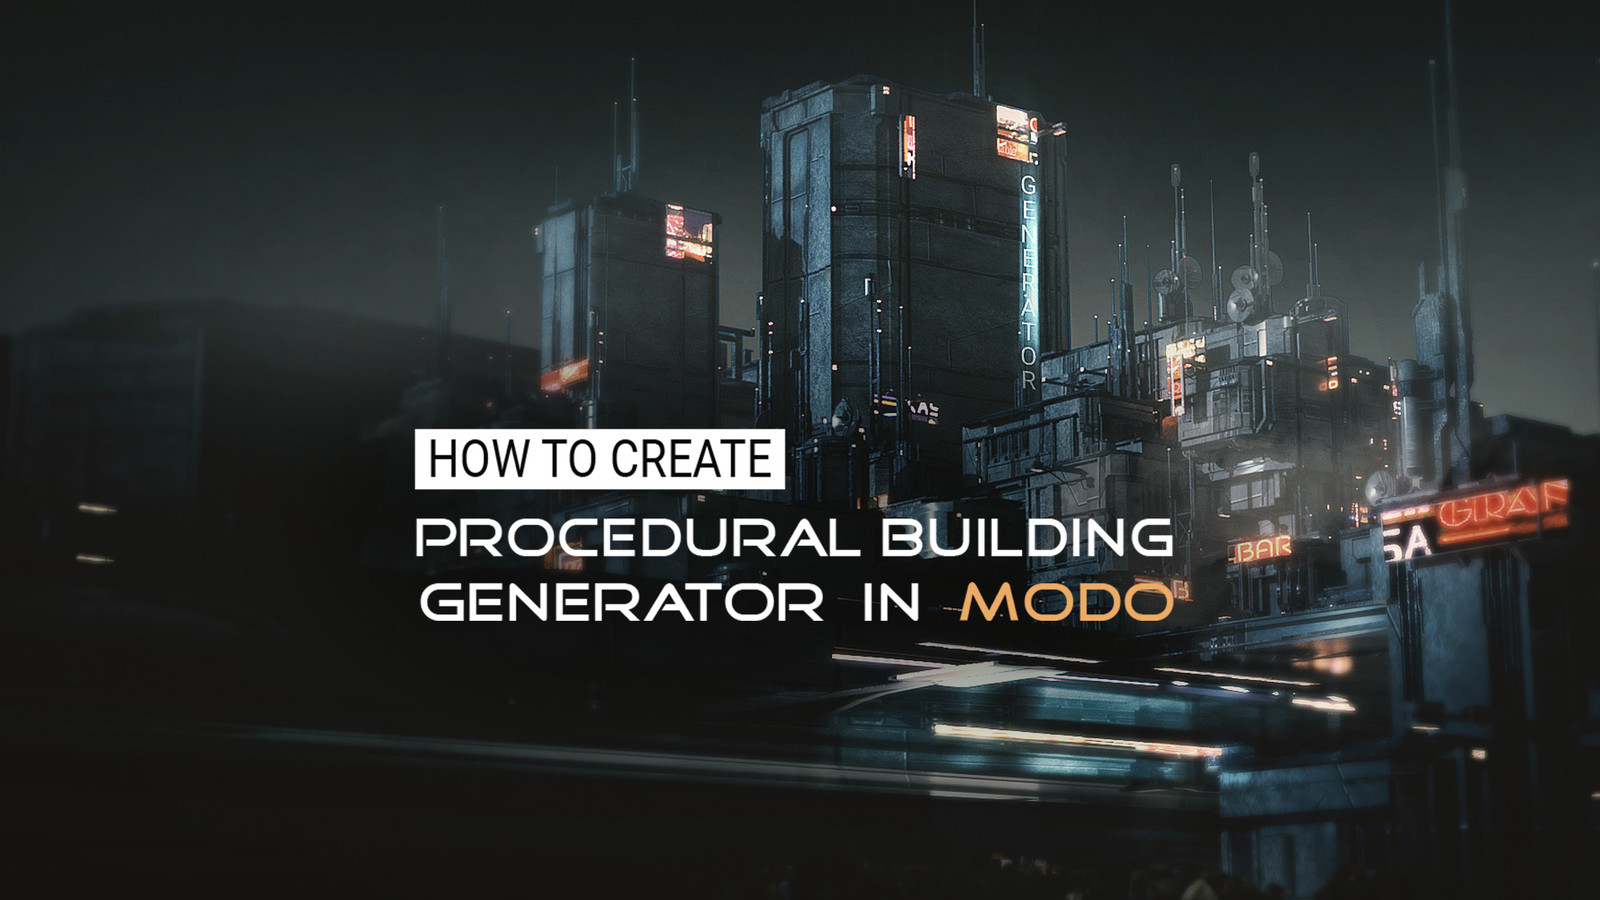 Gumroad - How to create Procedural Building Generator in Modo